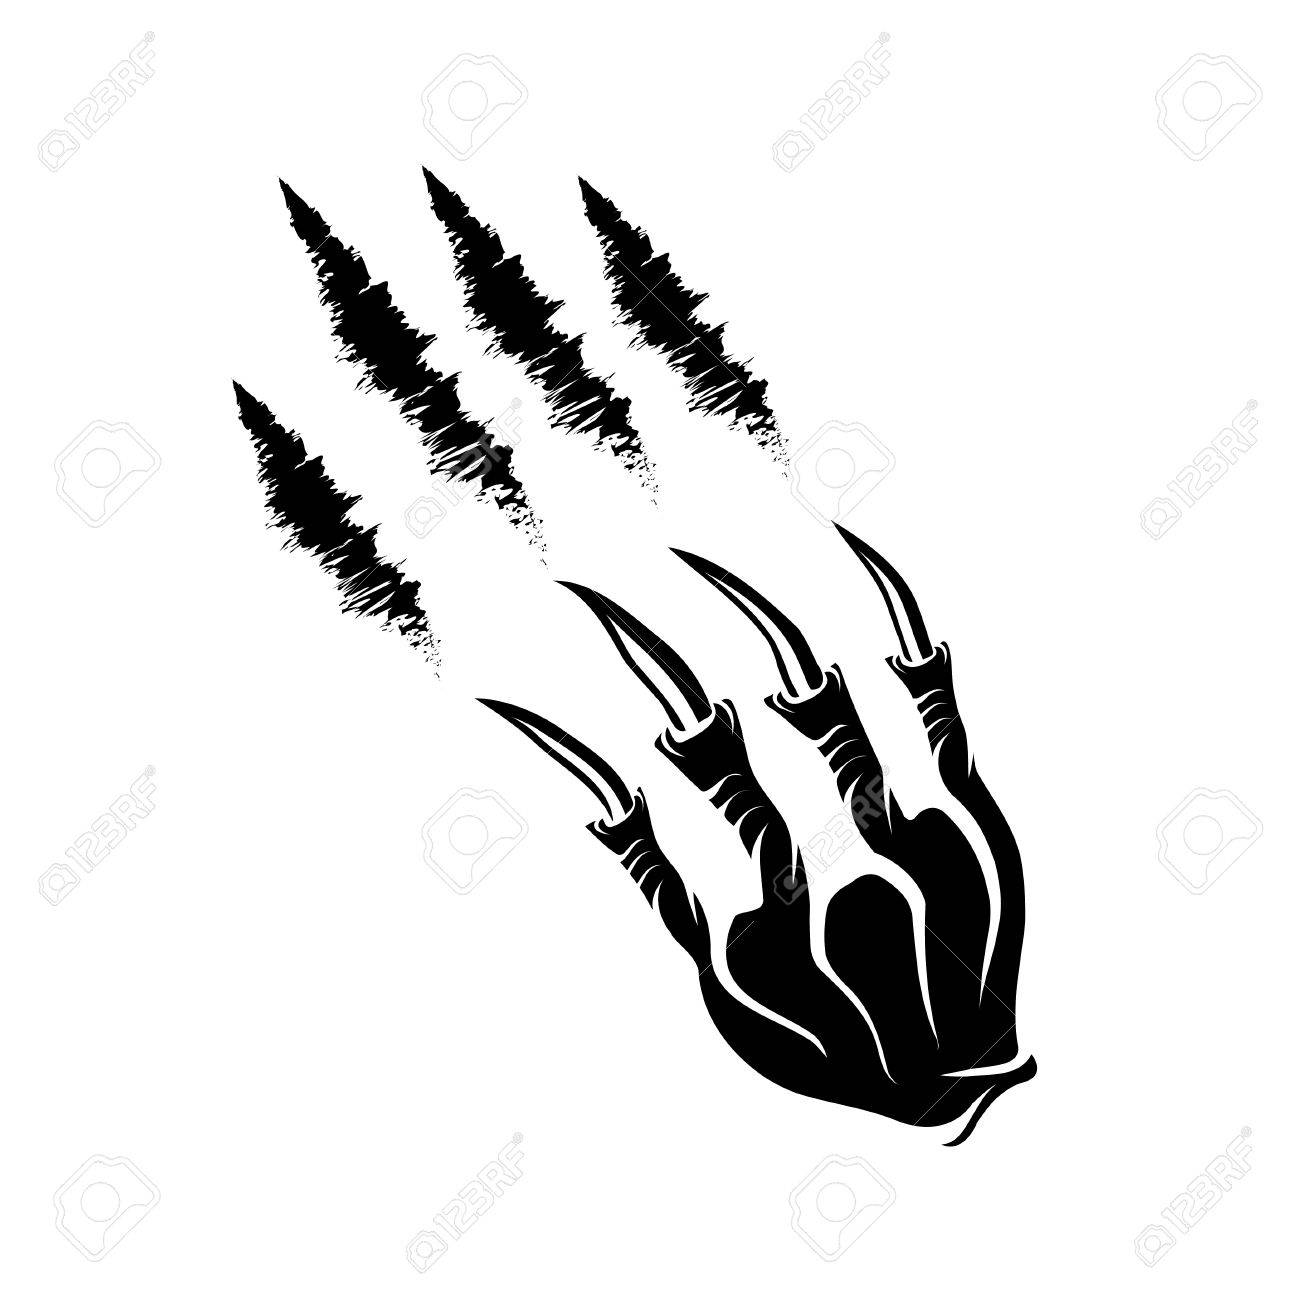 hight resolution of monster claws and claws marks stock vector 37094986